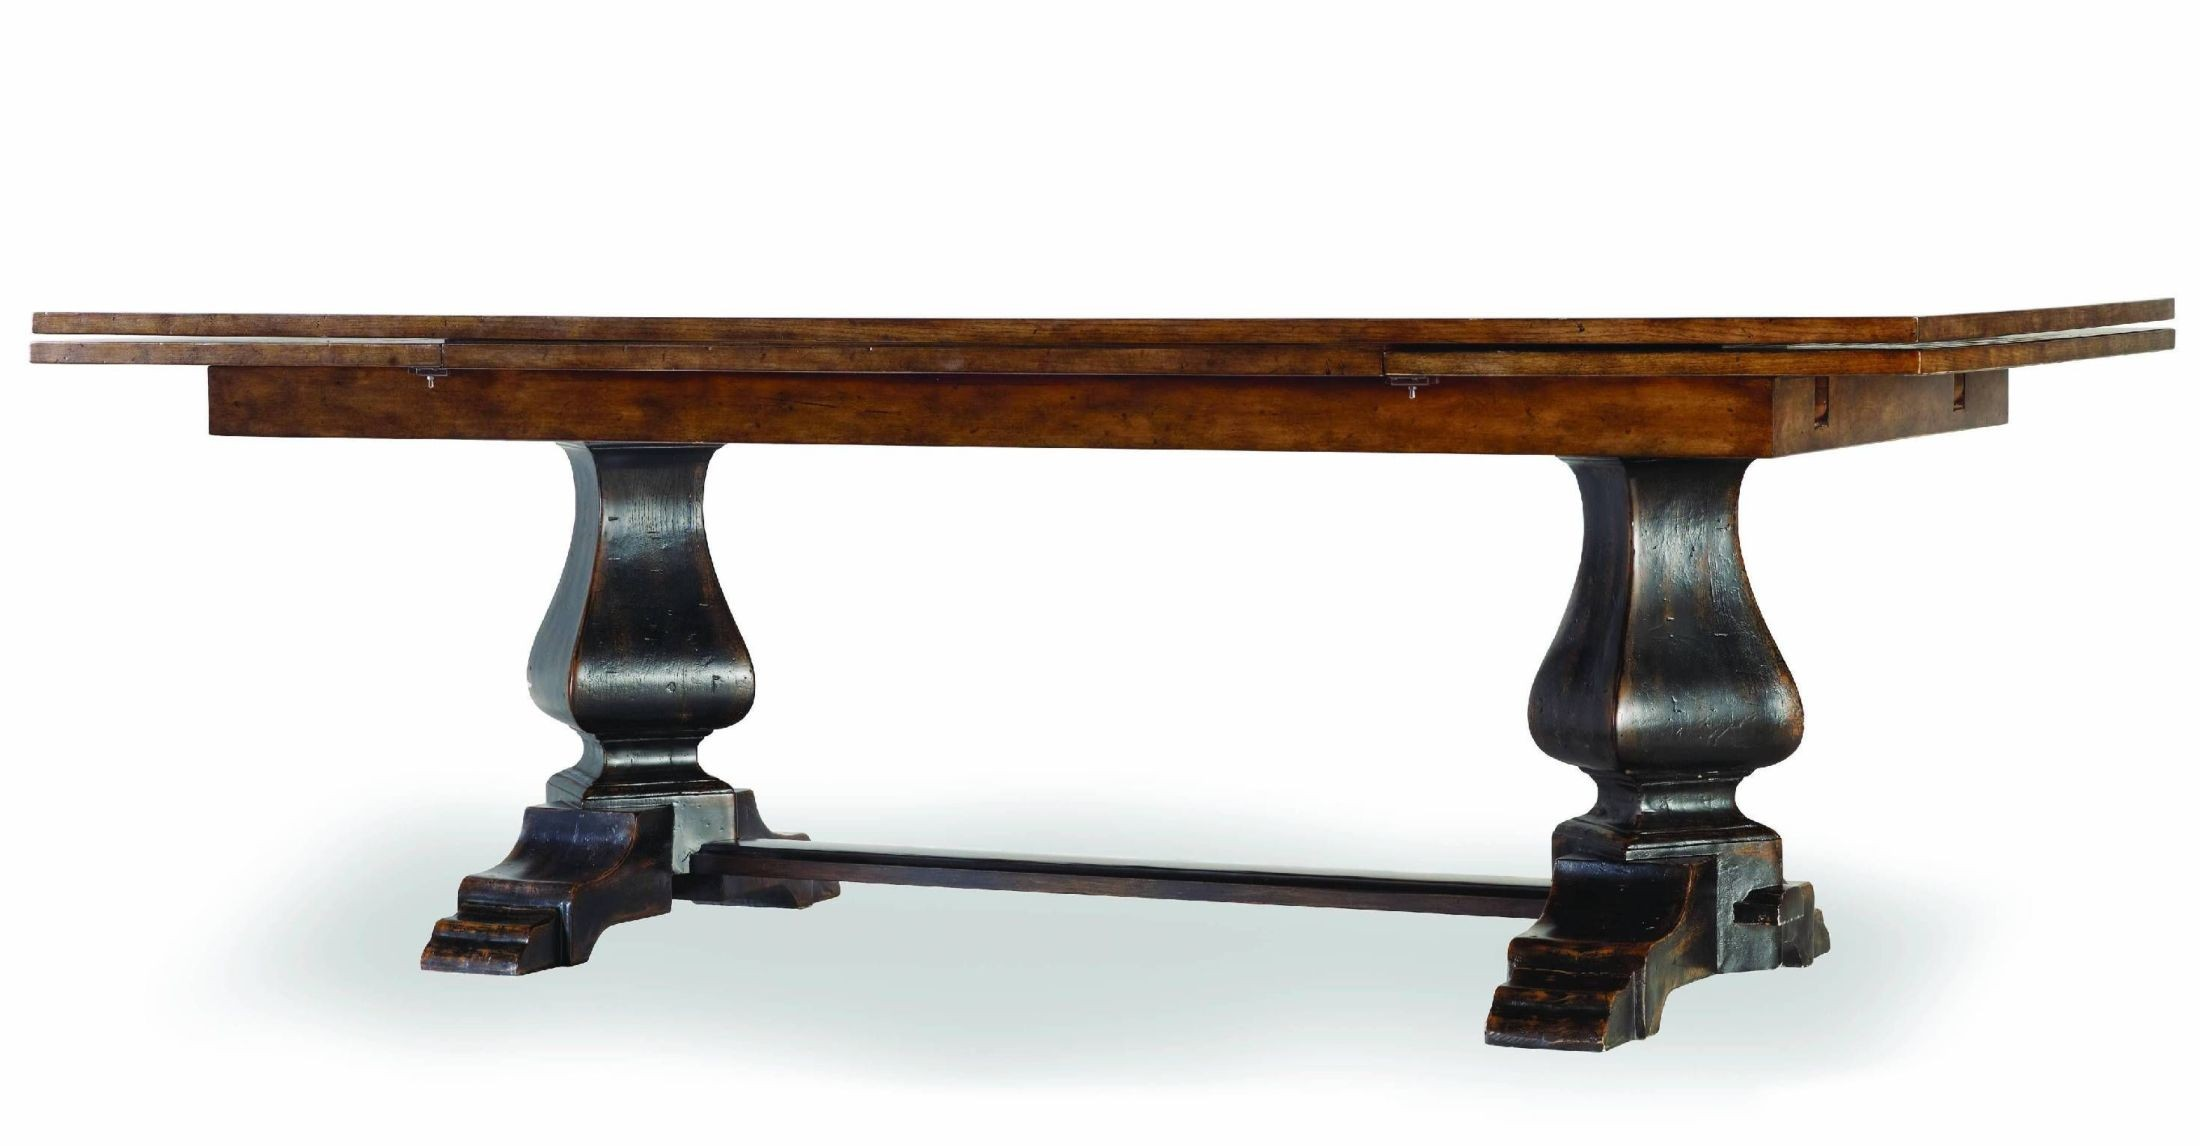 Sanctuary Ebony and Driftwood Extendable Dining Table from  : wys8svqjxjulhhn4rgtm from colemanfurniture.com size 2200 x 1146 jpeg 175kB